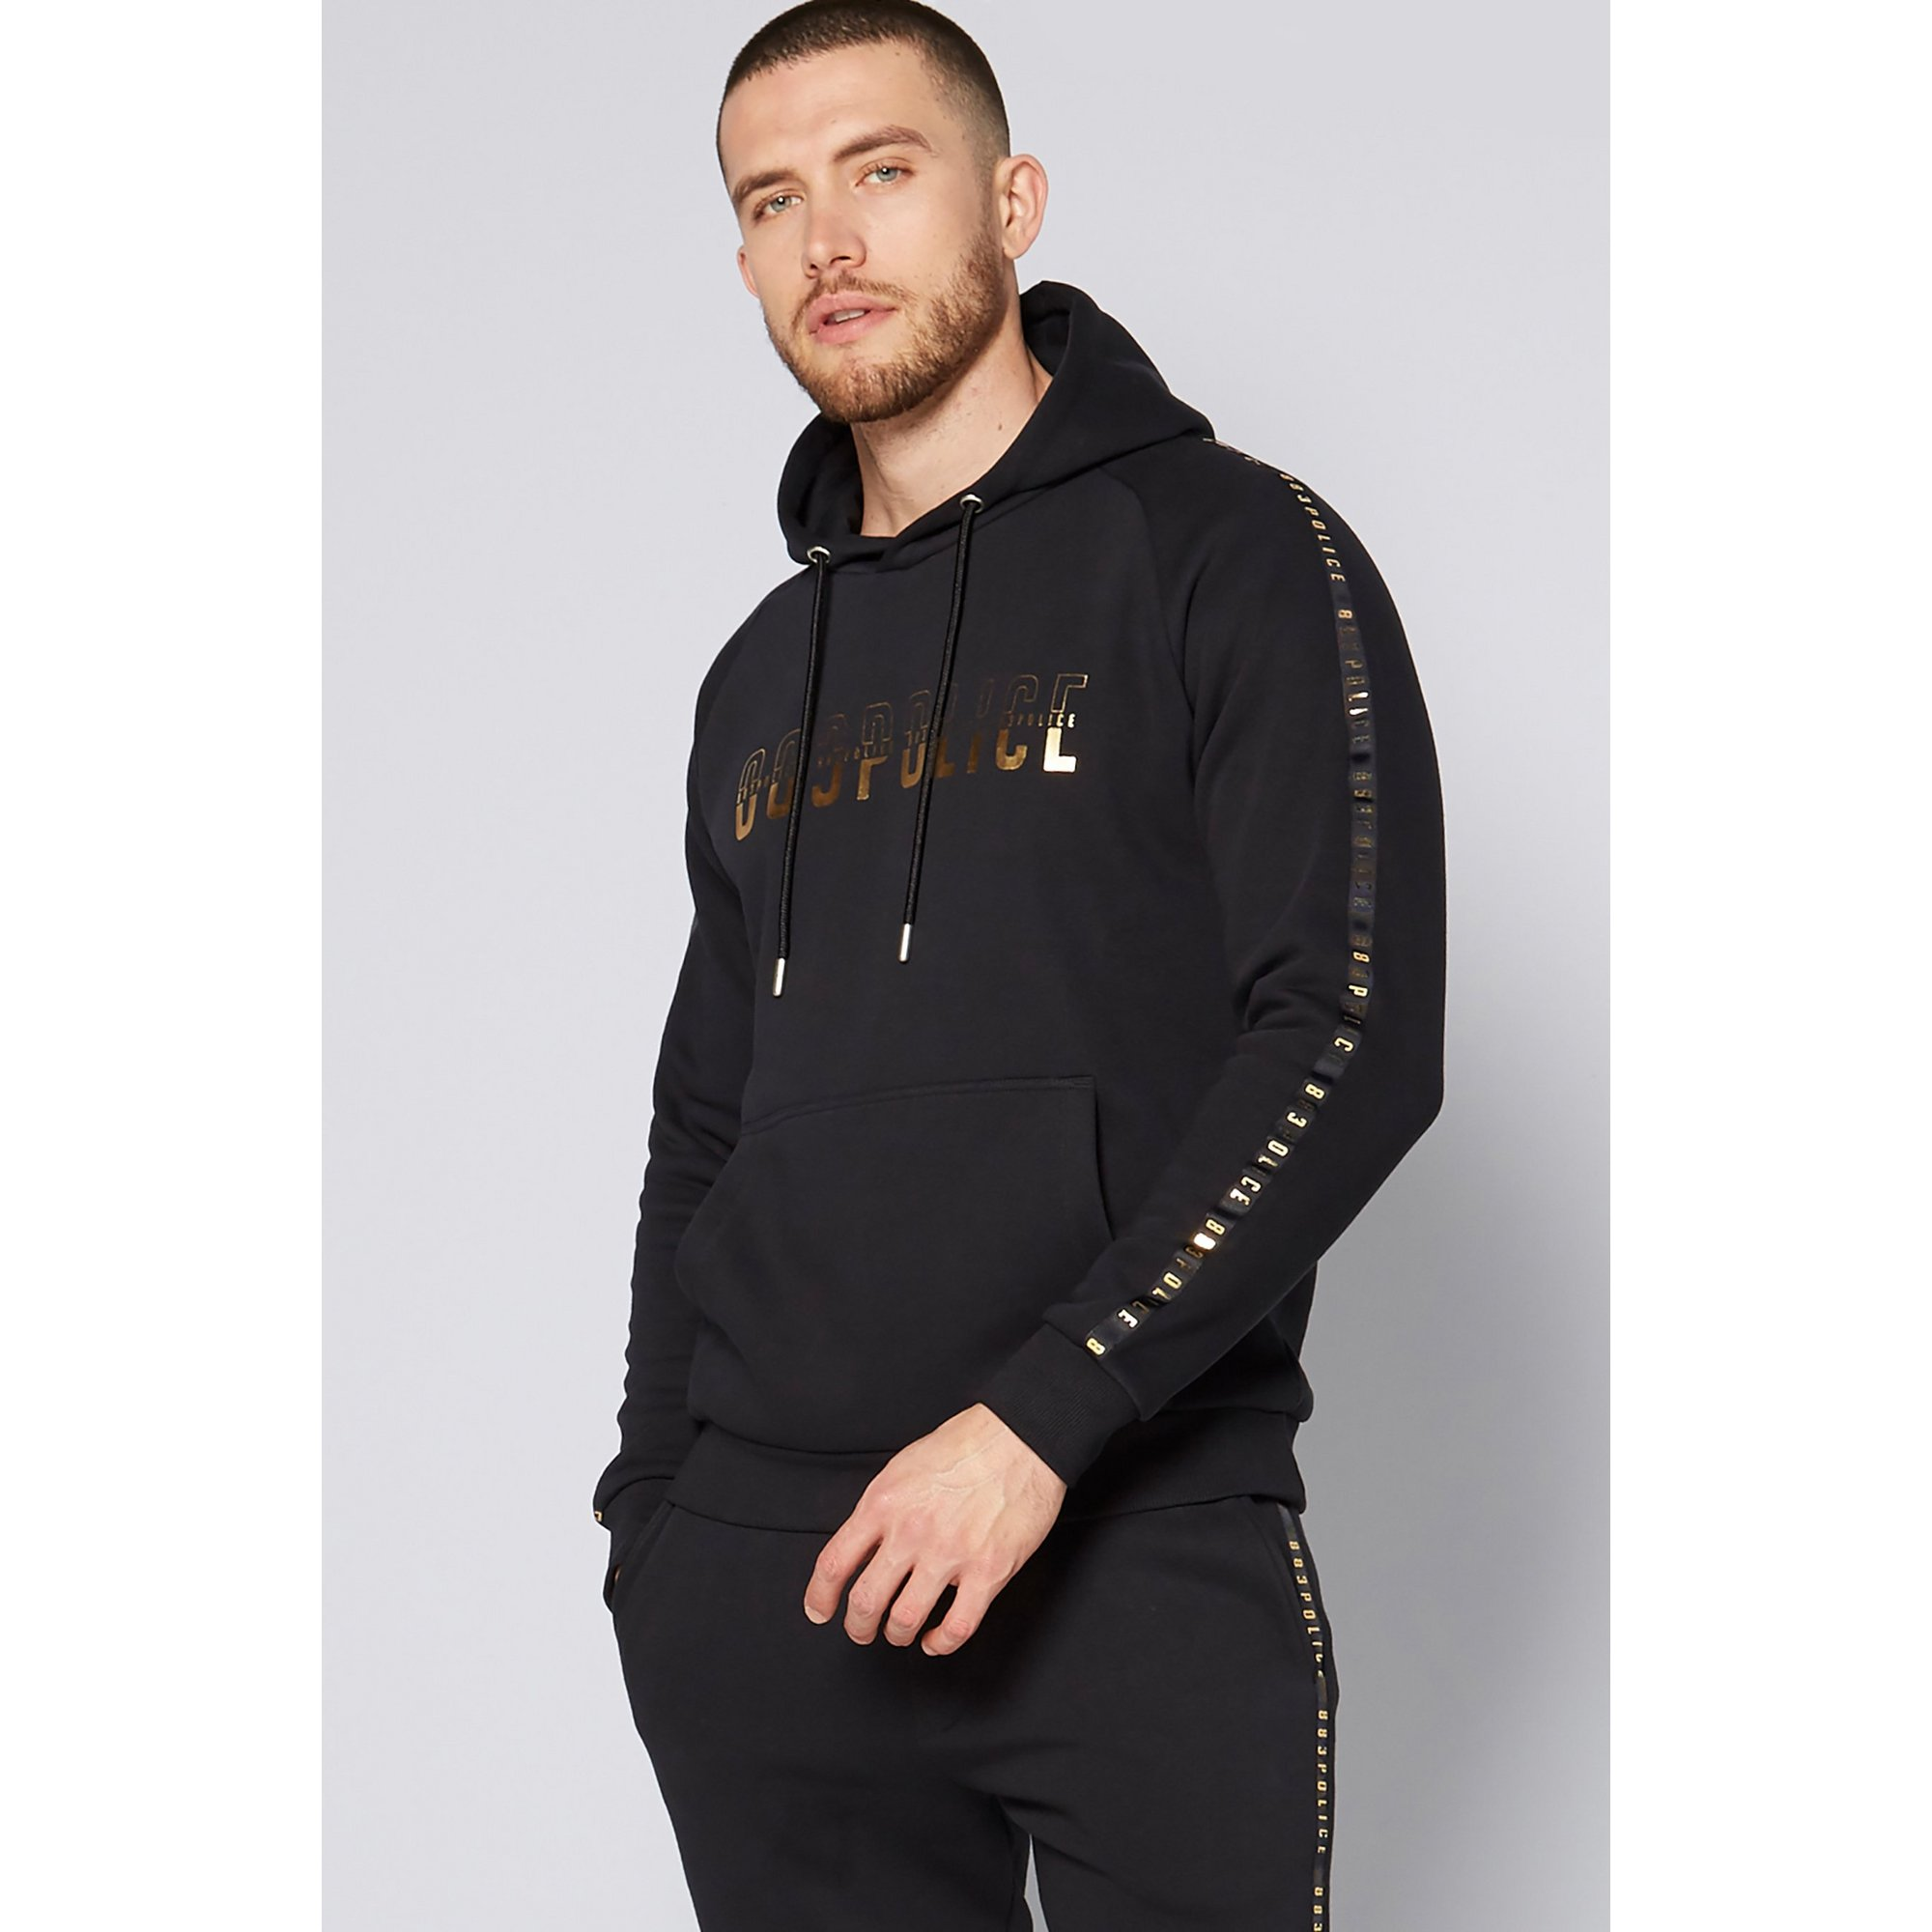 Image of 883 Police Hoody